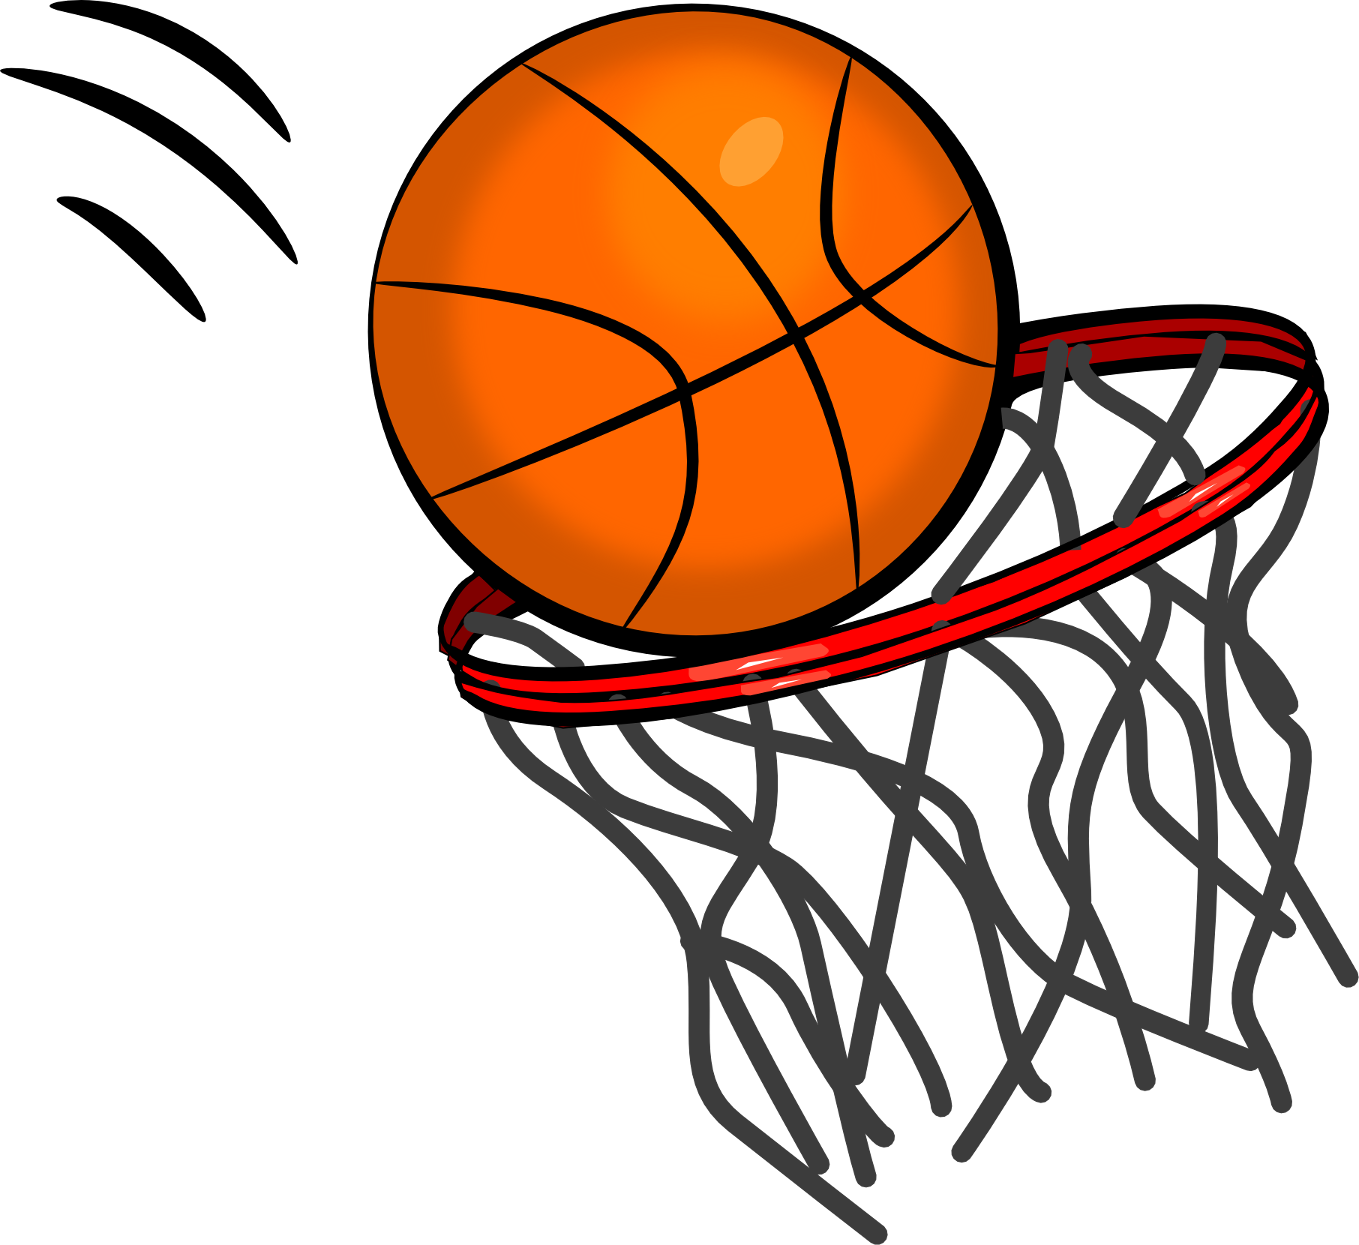 basketball hoop clipart clear background